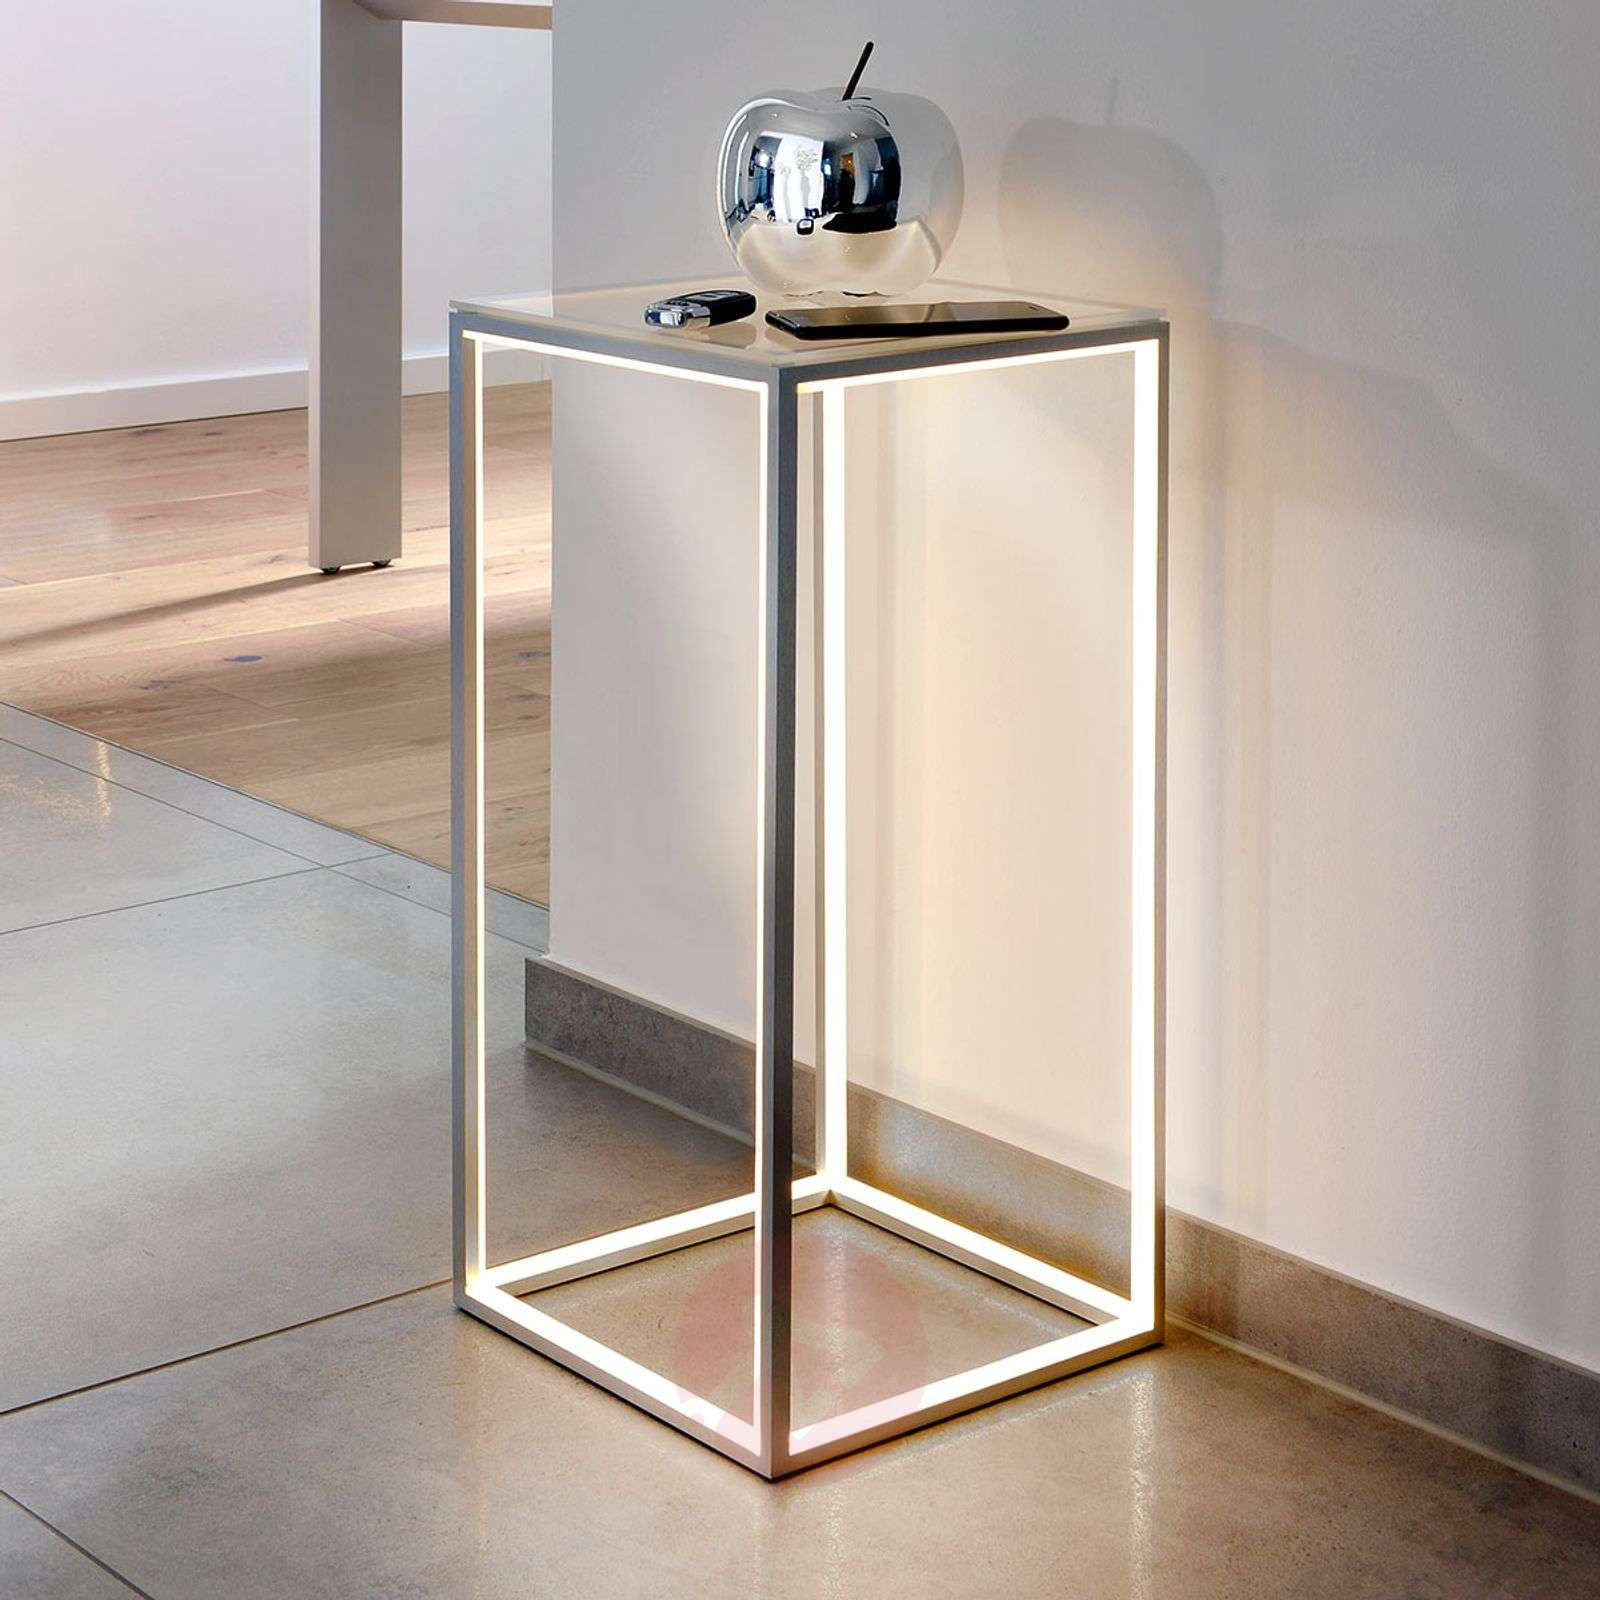 Illuminated side table Delux 60 cm high-8507645-01